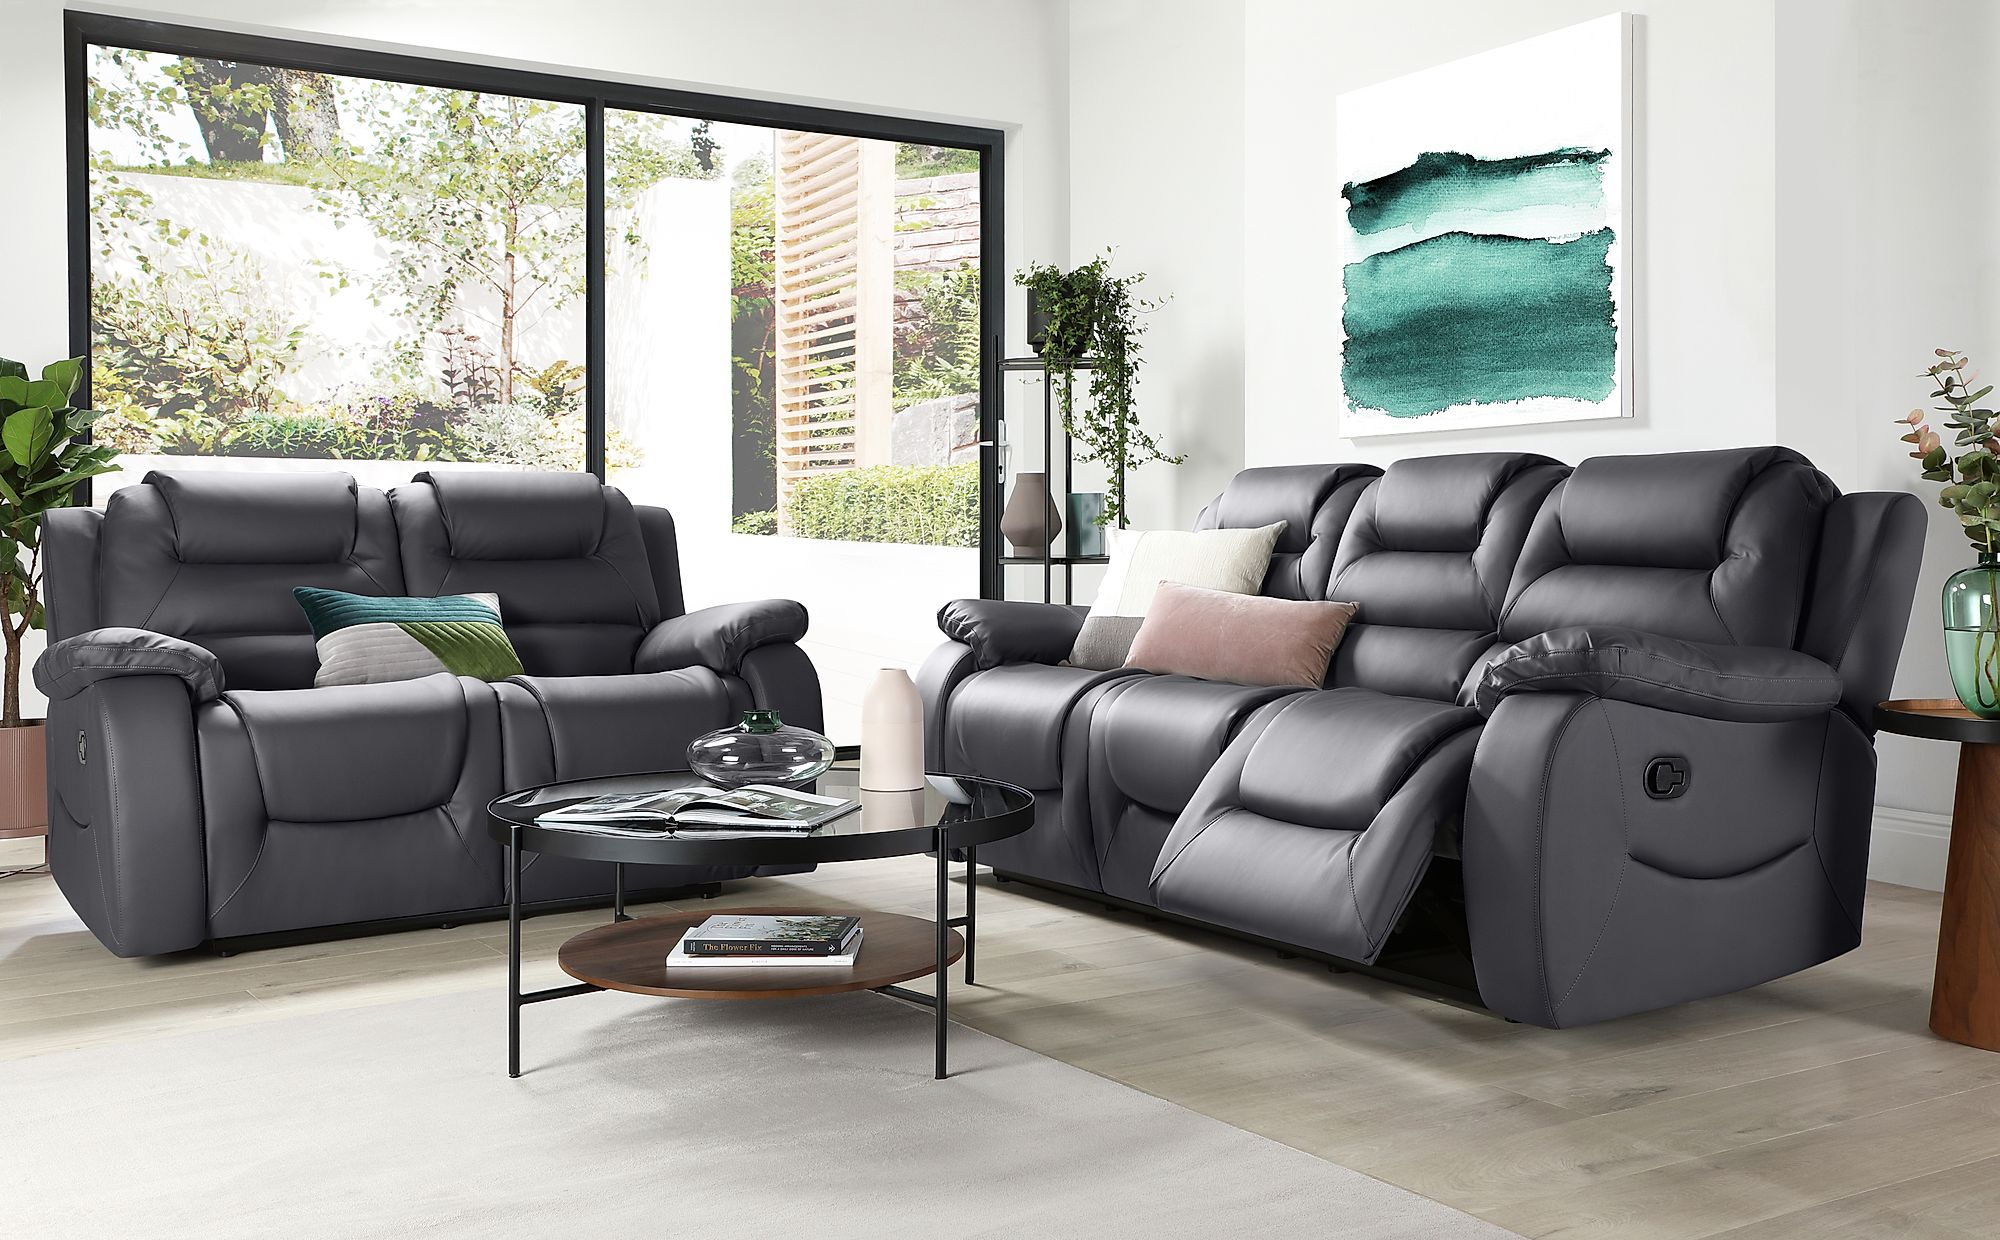 Vancouver Grey Leather Recliner Sofa 3 2 Seater Only 999 98